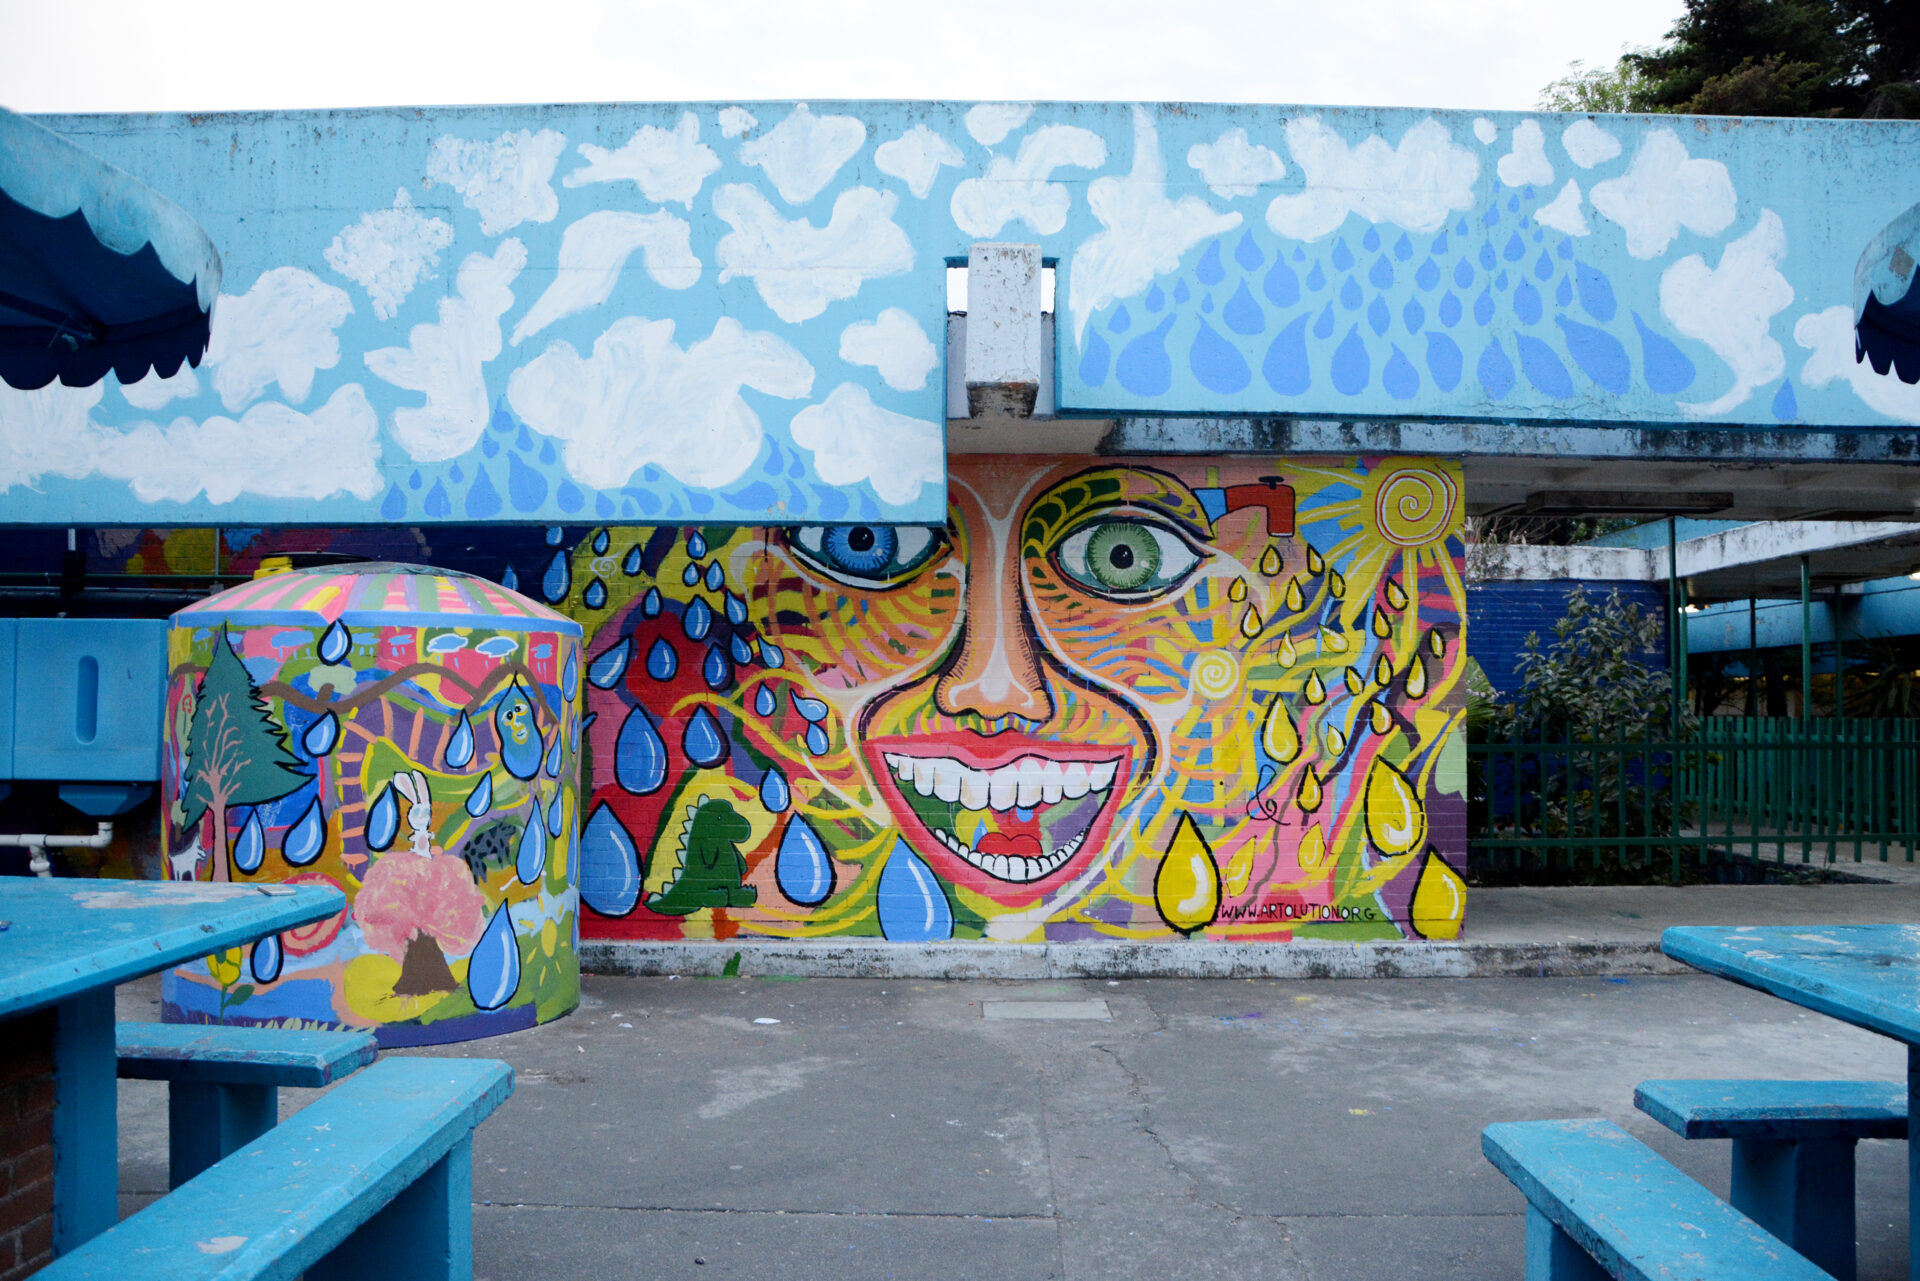 Water Culture Program_School system in Mexico City_Community Mural by Artolution Max Frieder_ Credit Isla Urbana